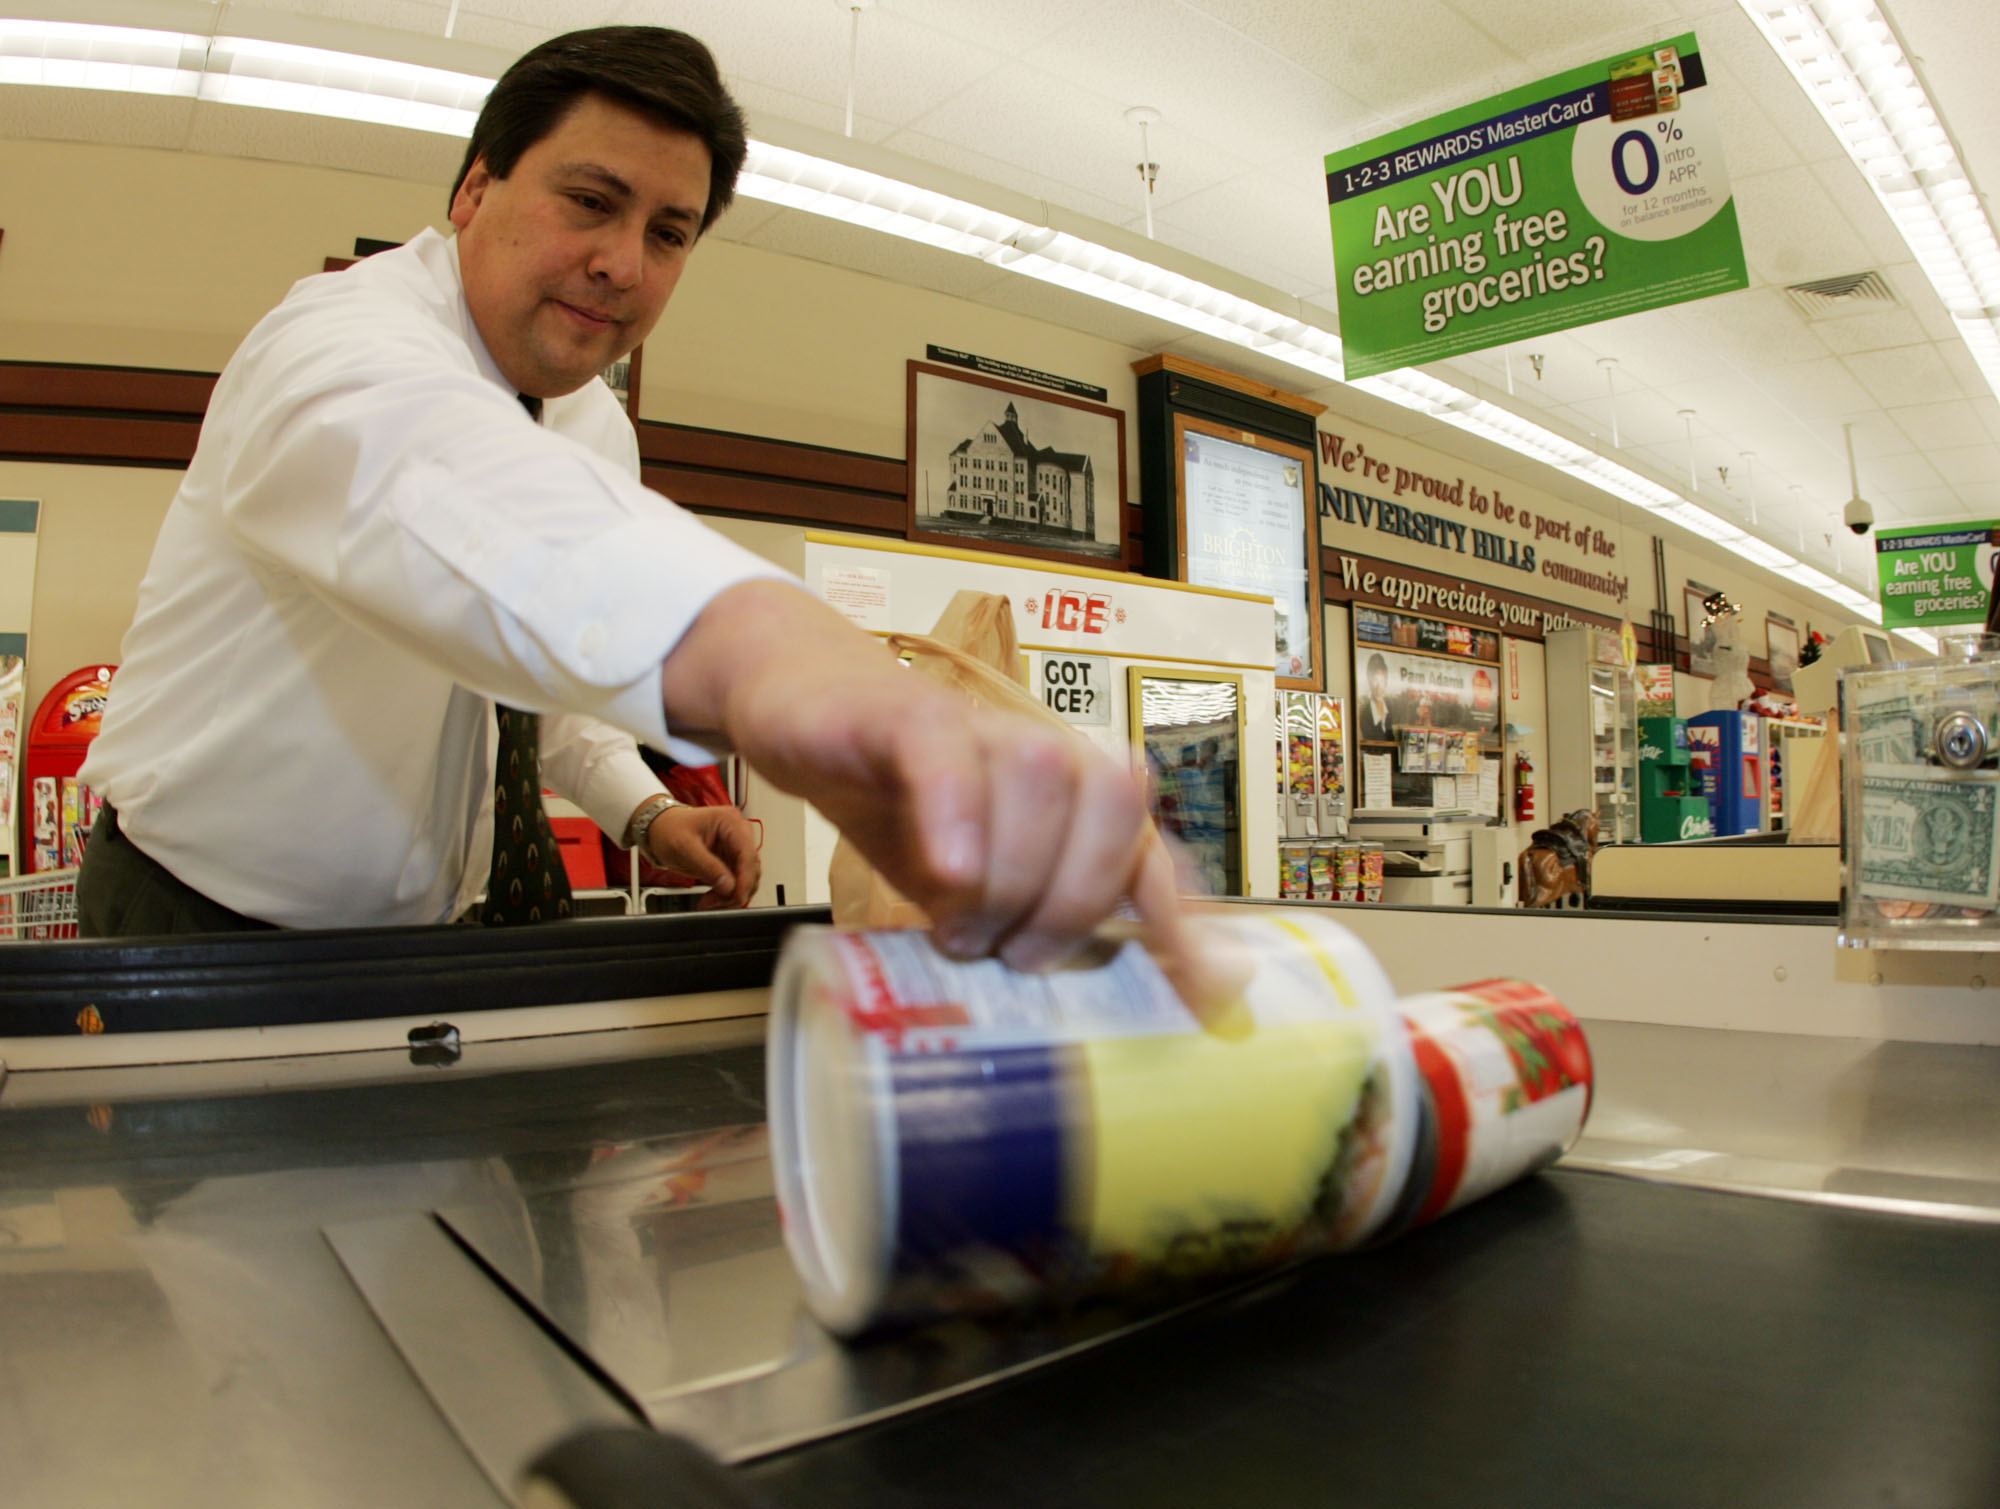 Photo: Bagging groceries at King Soopers (AP Photo)